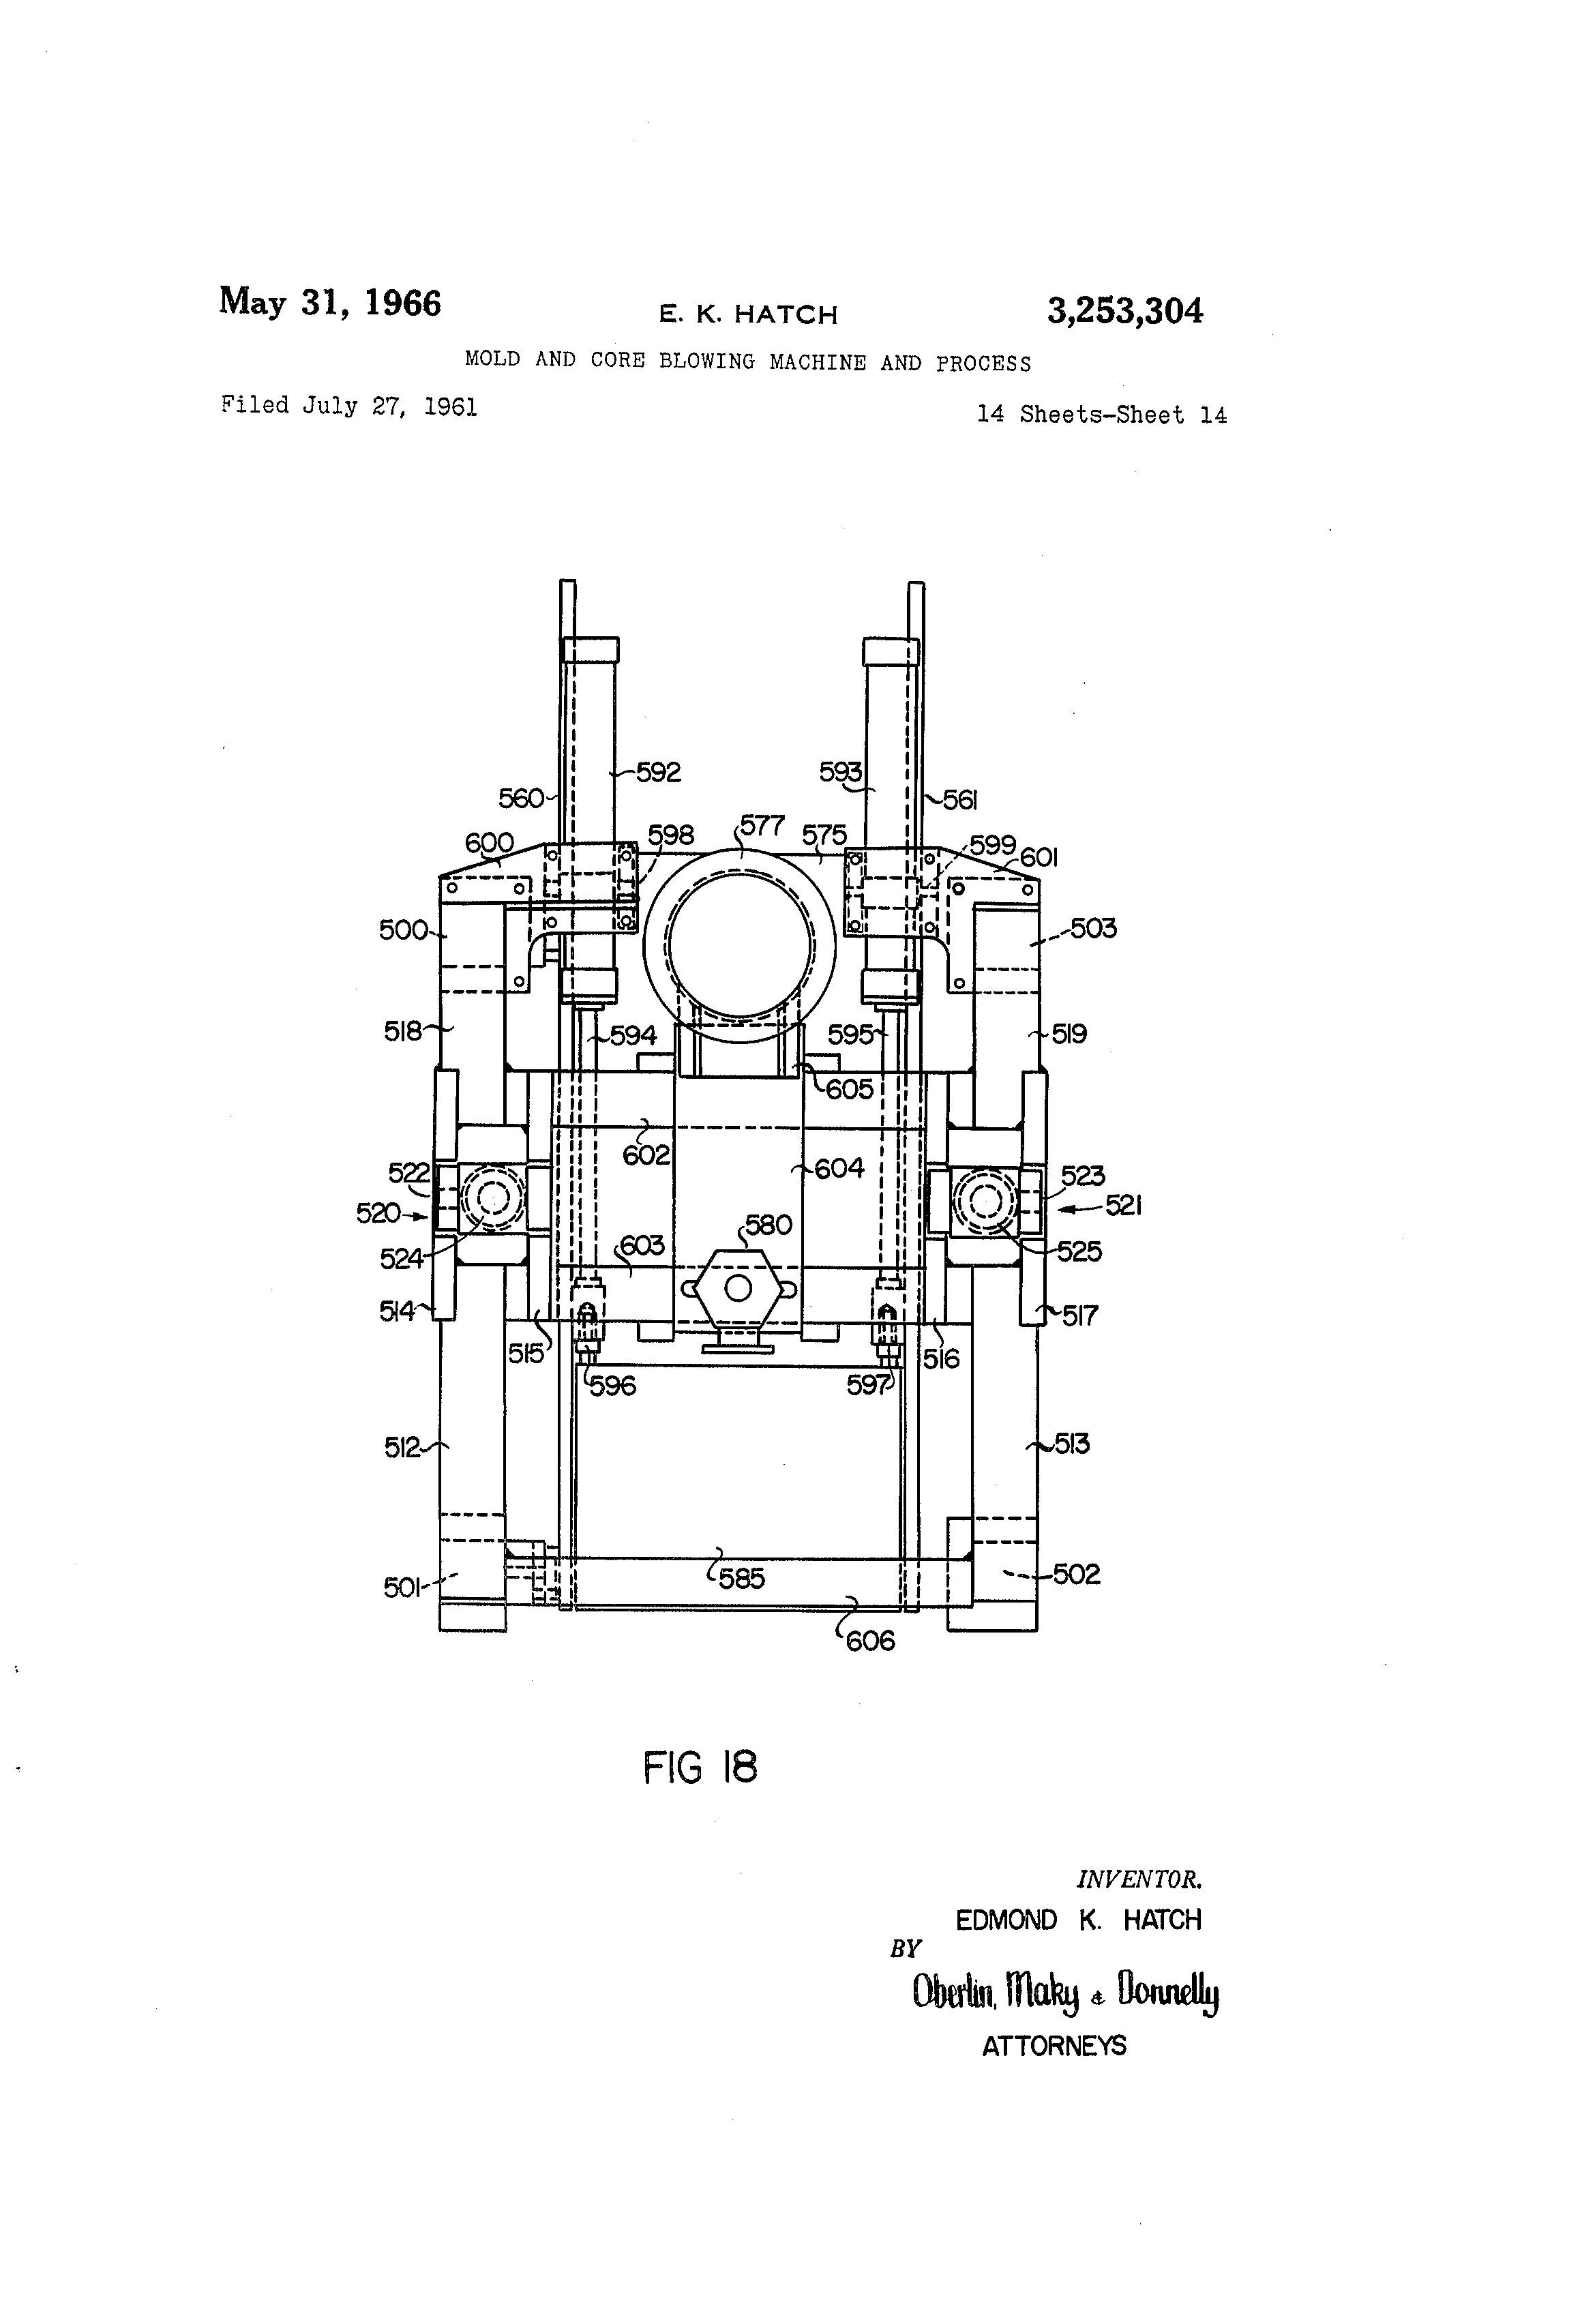 US3253304 13 patent us3253304 mold and core blowing machine and process  at reclaimingppi.co